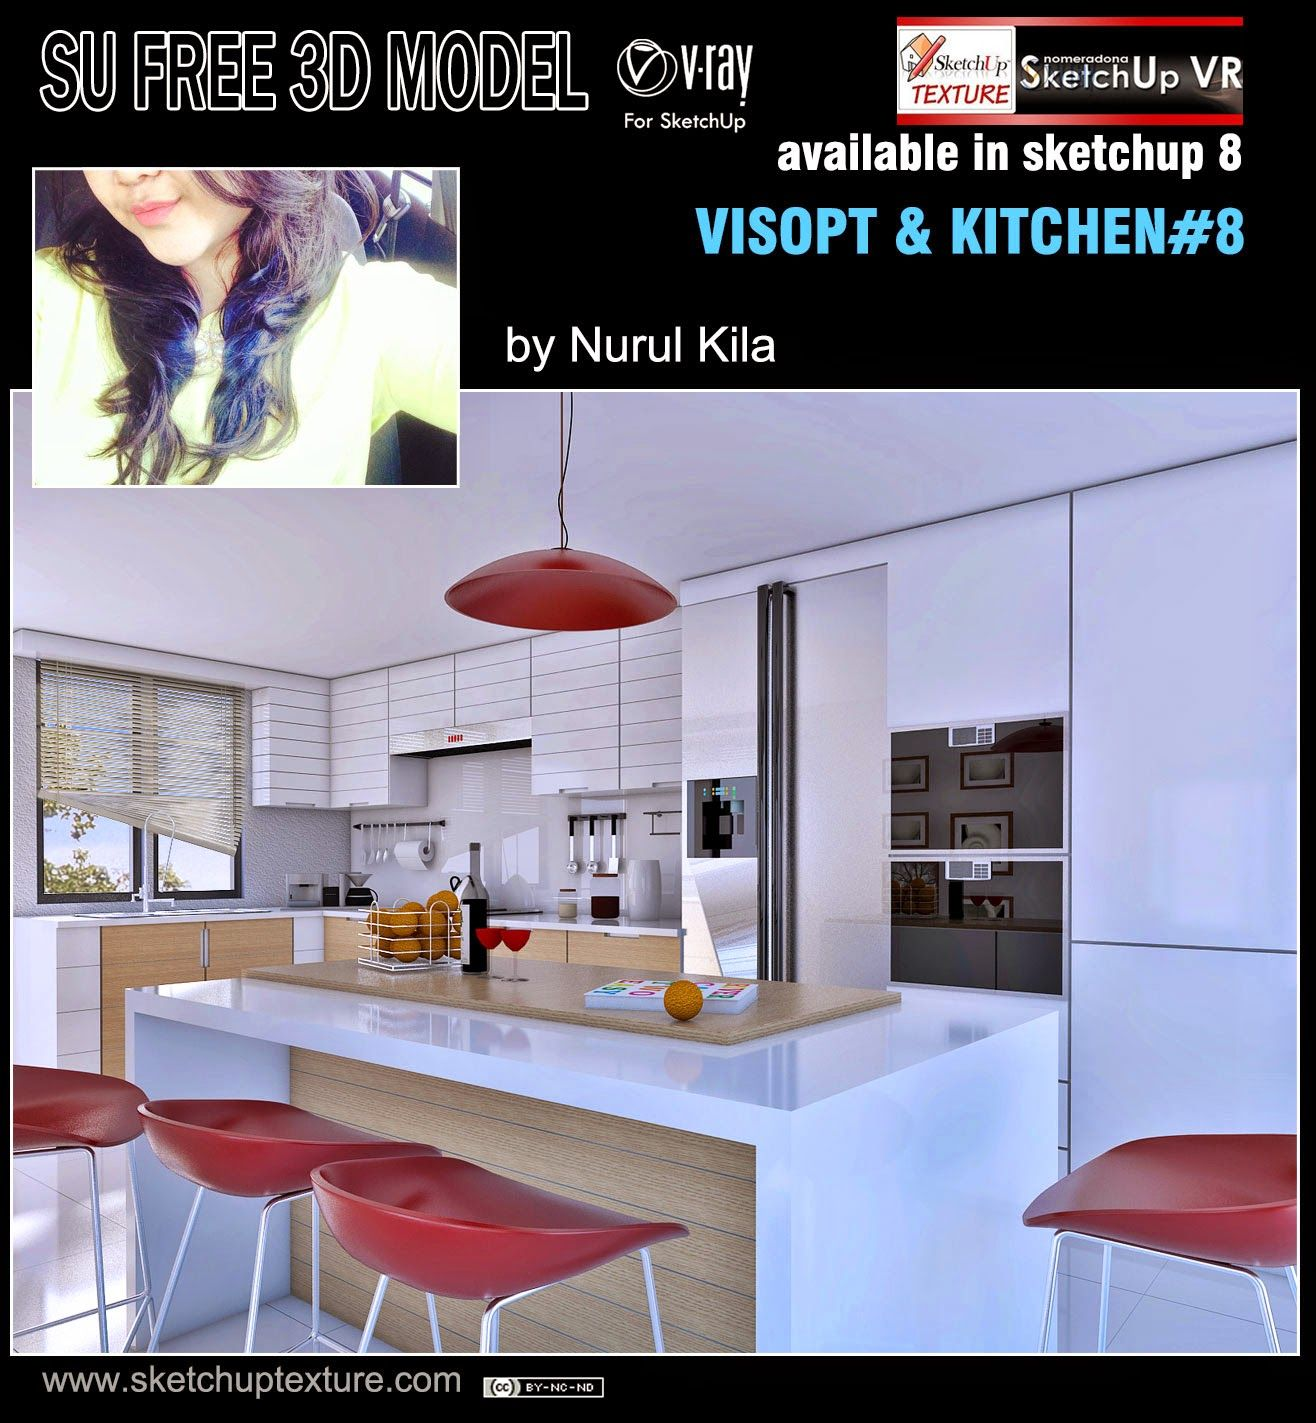 8#-sketchup-model-and-visopt-kitchen-by-Nurul-Kila.jpg